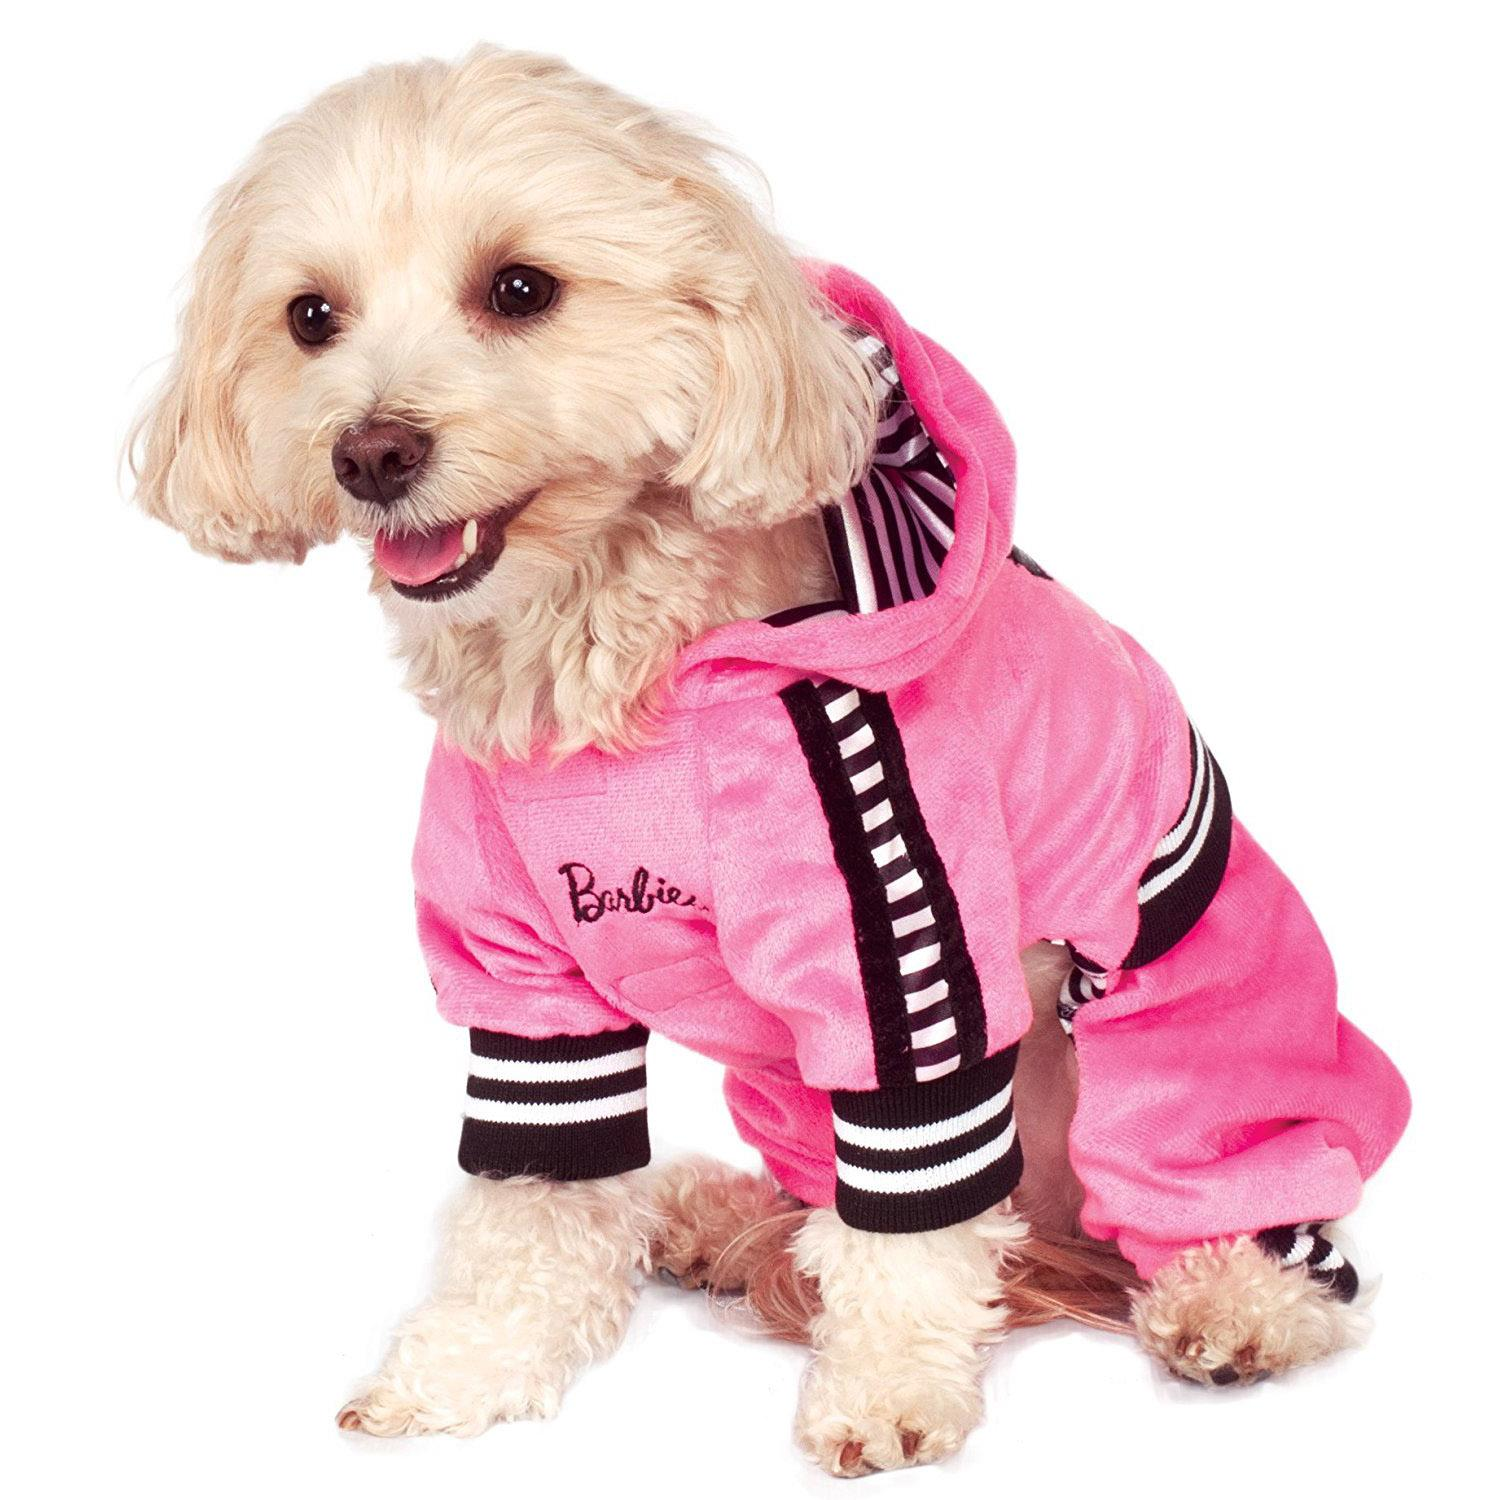 Barbie Girl Velour Tracksuit Pet Costume by Rubieu0027s  sc 1 st  BaxterBoo & Barbie Girl Velour Tracksuit Pet Costume by Rubieu0027s with Same Day ...